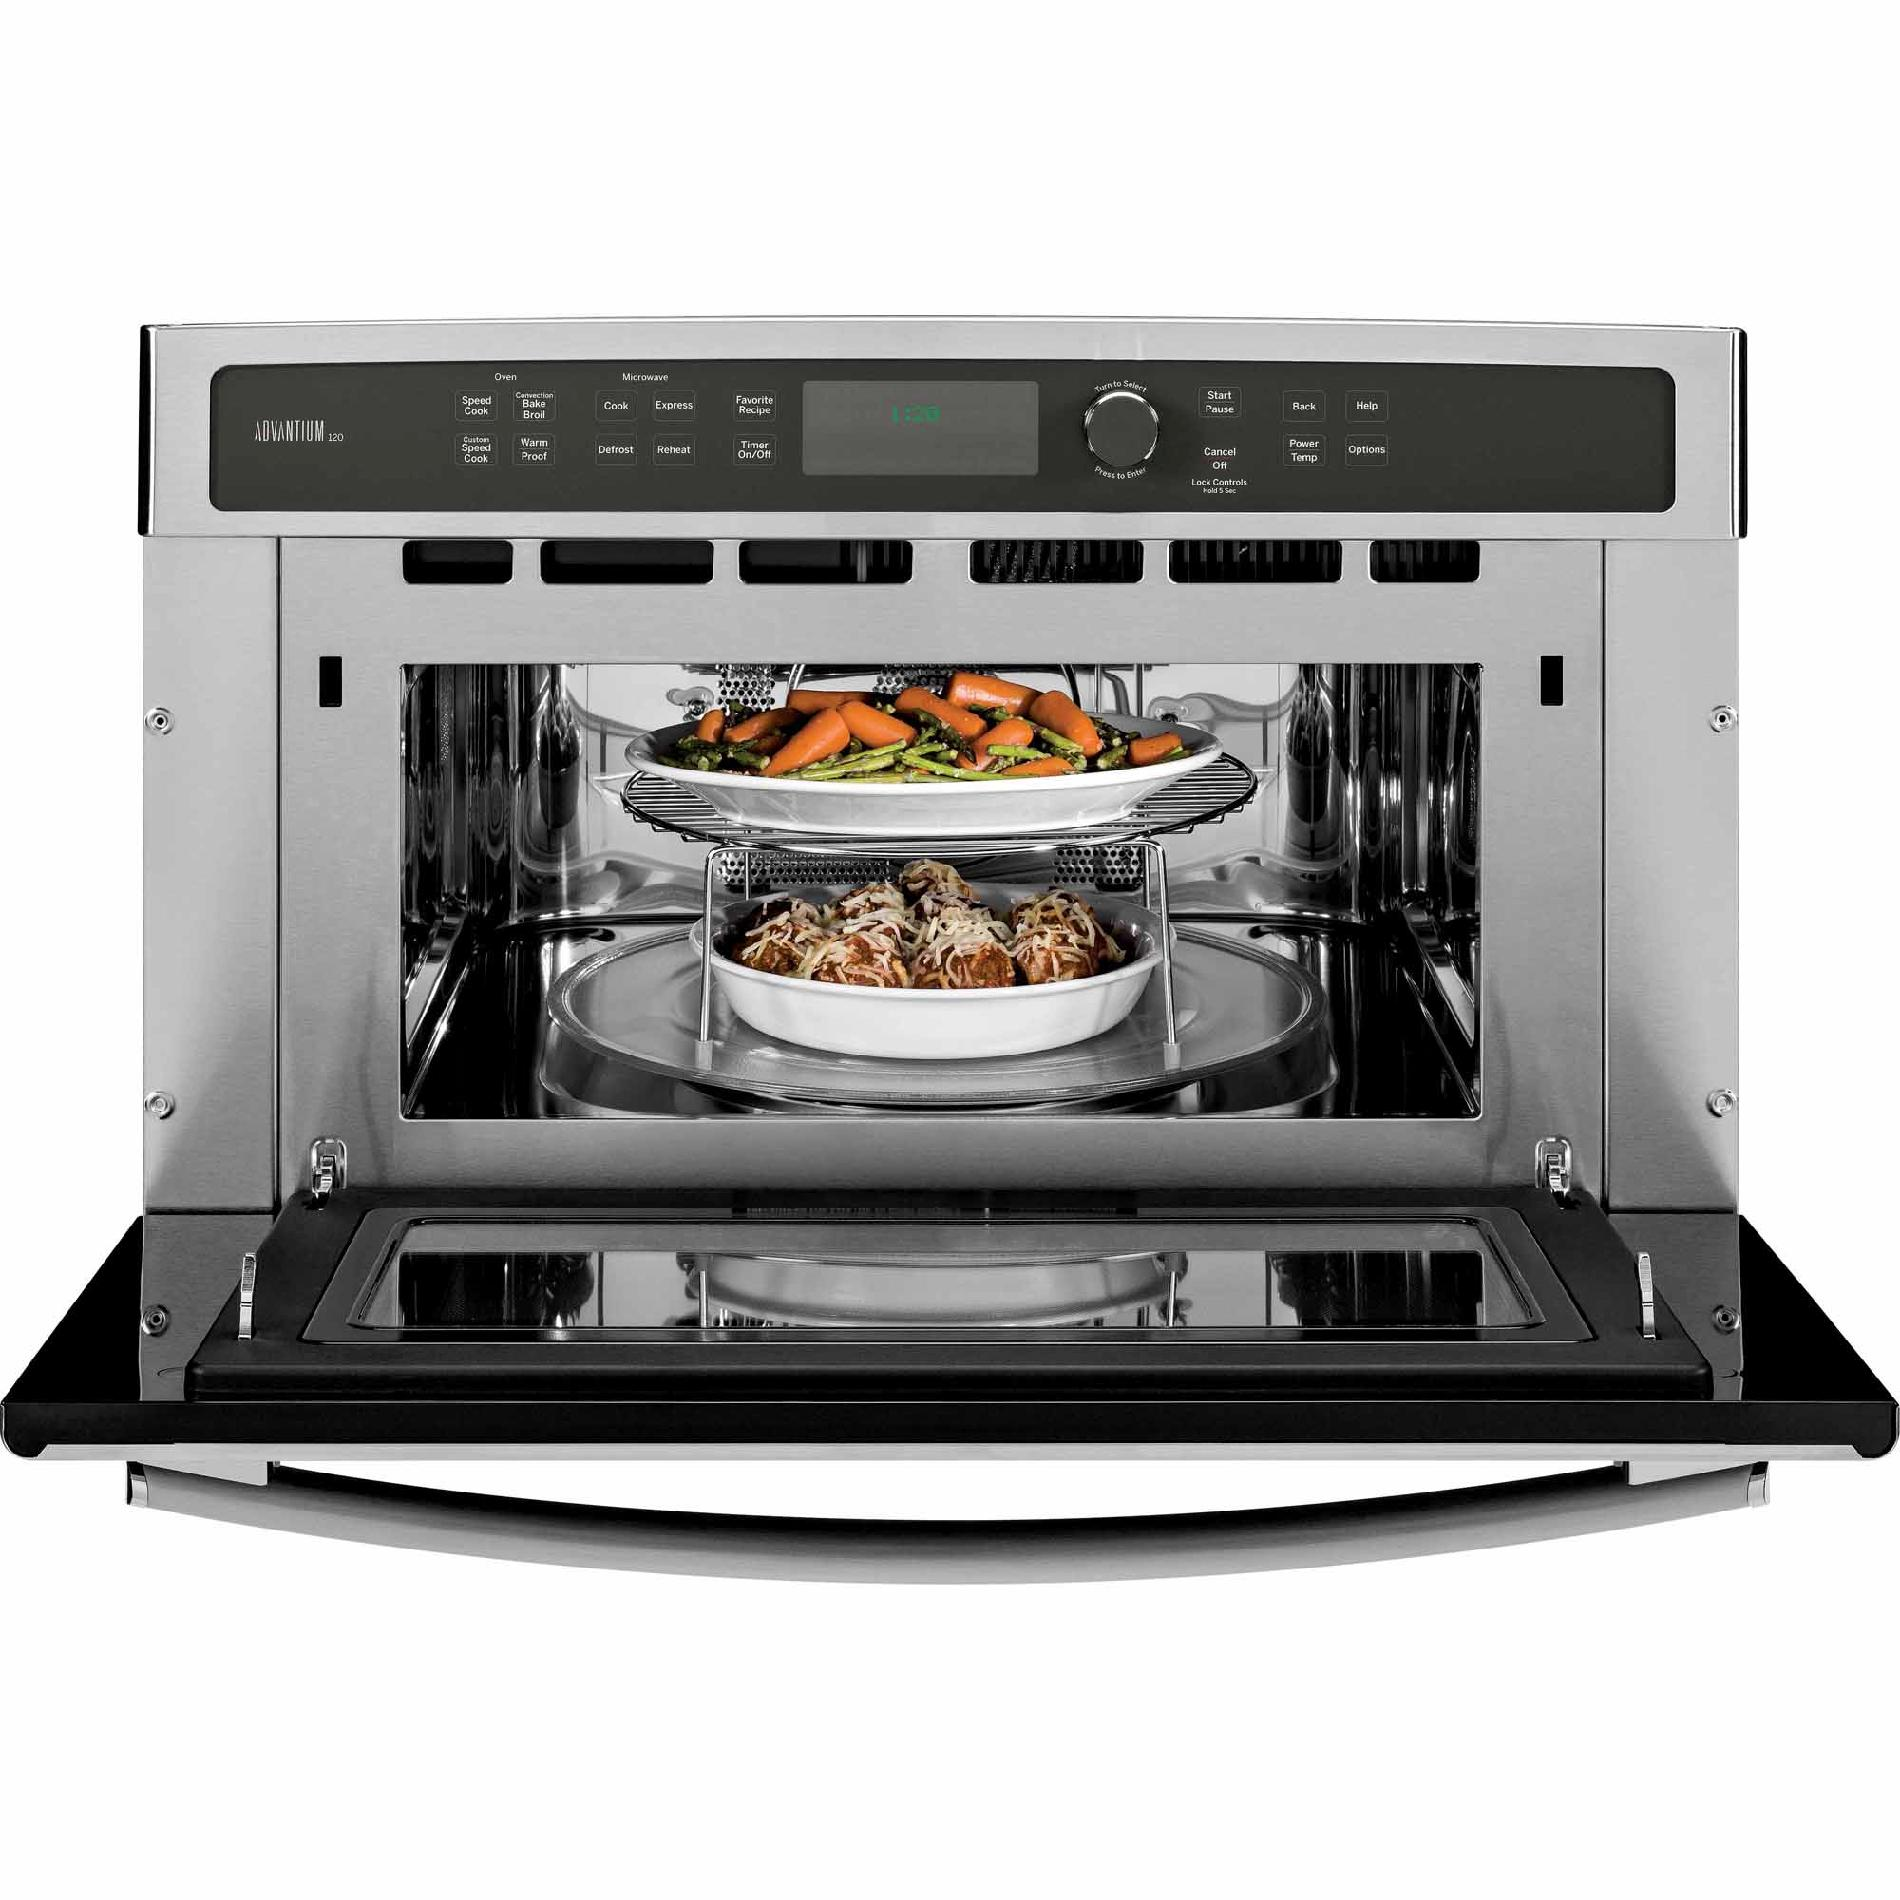 GE Profile PSB9120SFSS 1.7 cu. ft. Advantium® Microwave/Wall Oven - Stainless